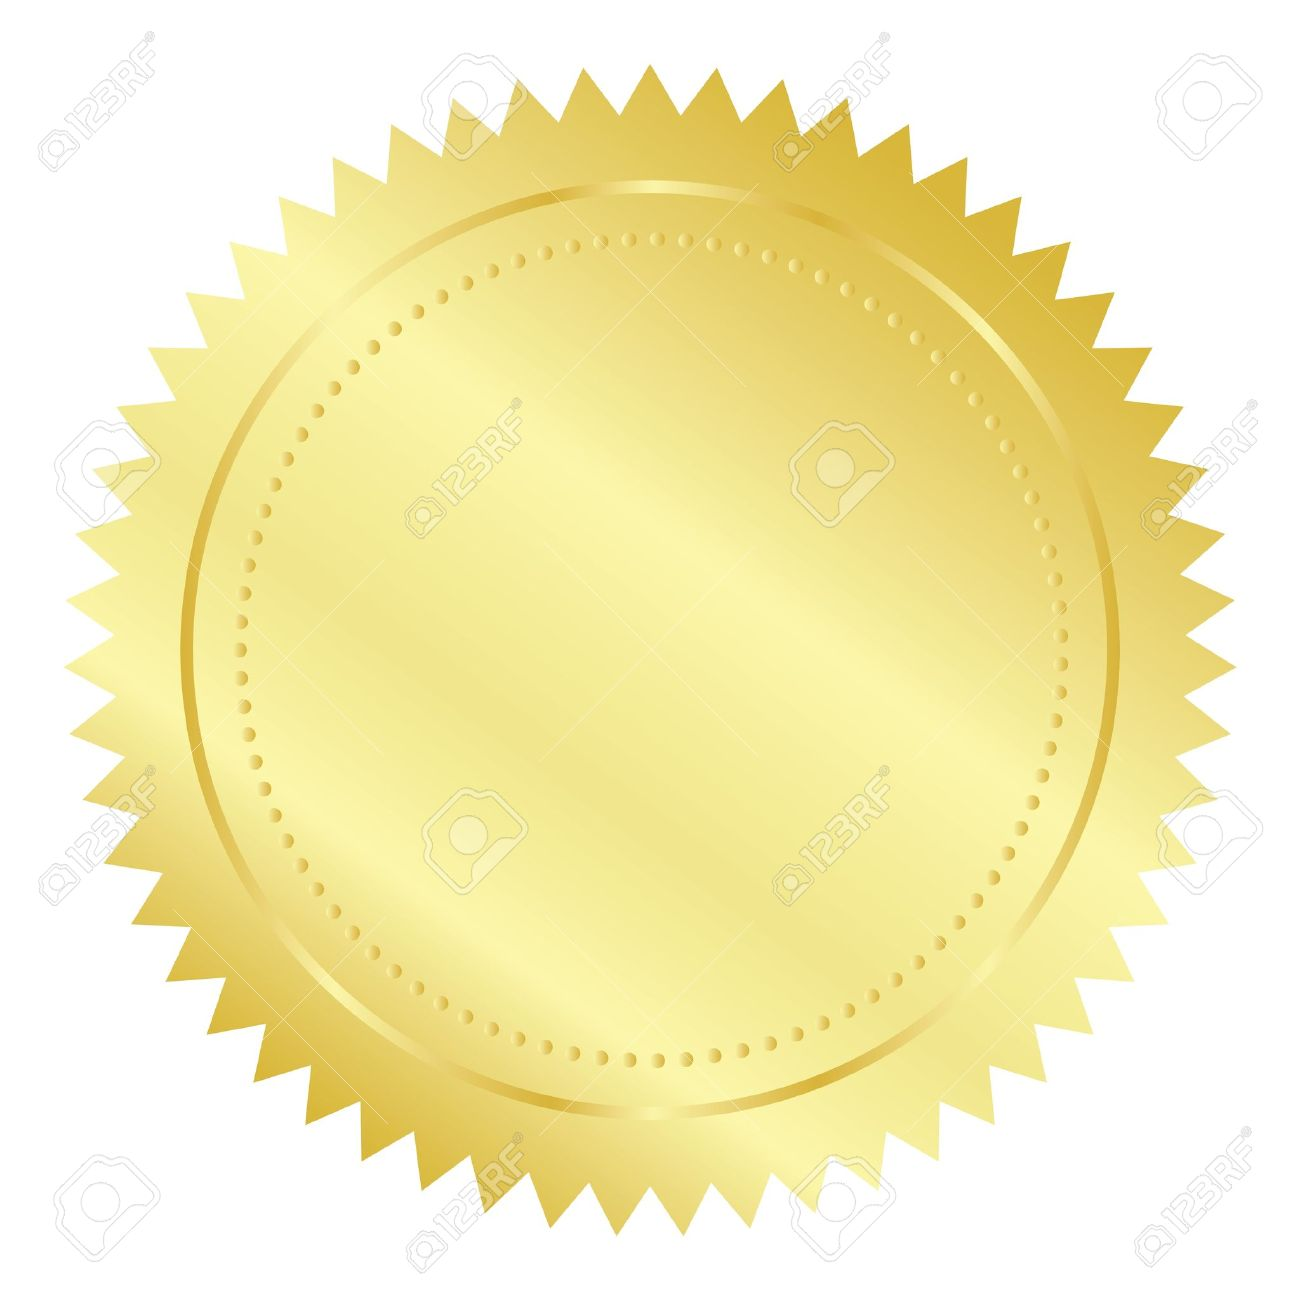 Gold seal clipart 4 » Clipart Station.